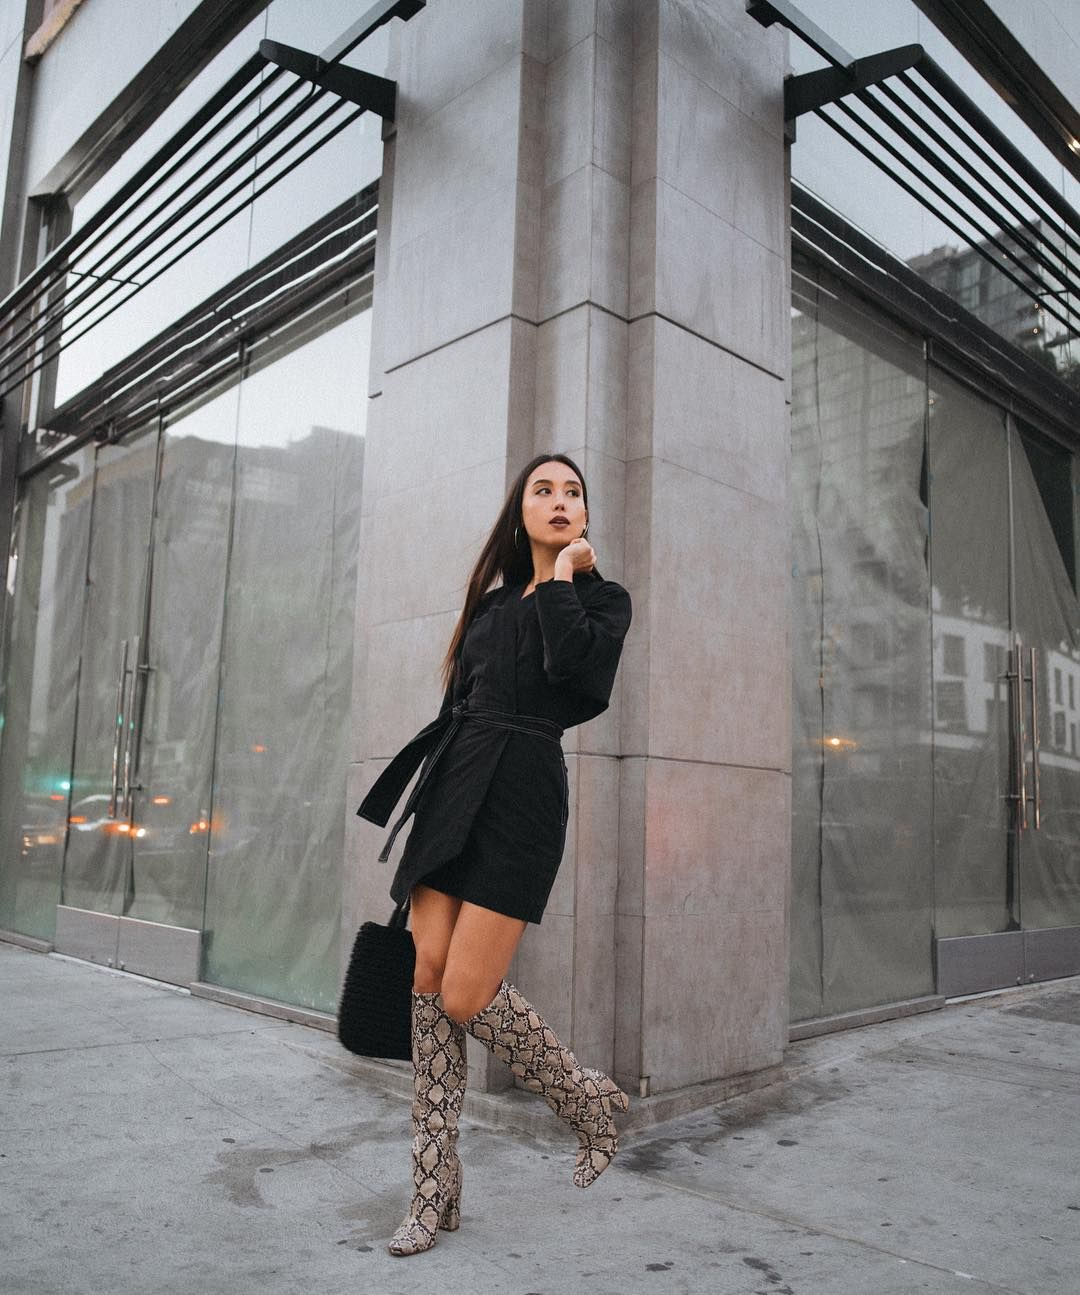 Knee High Snakeskin Boot Outfit Idea